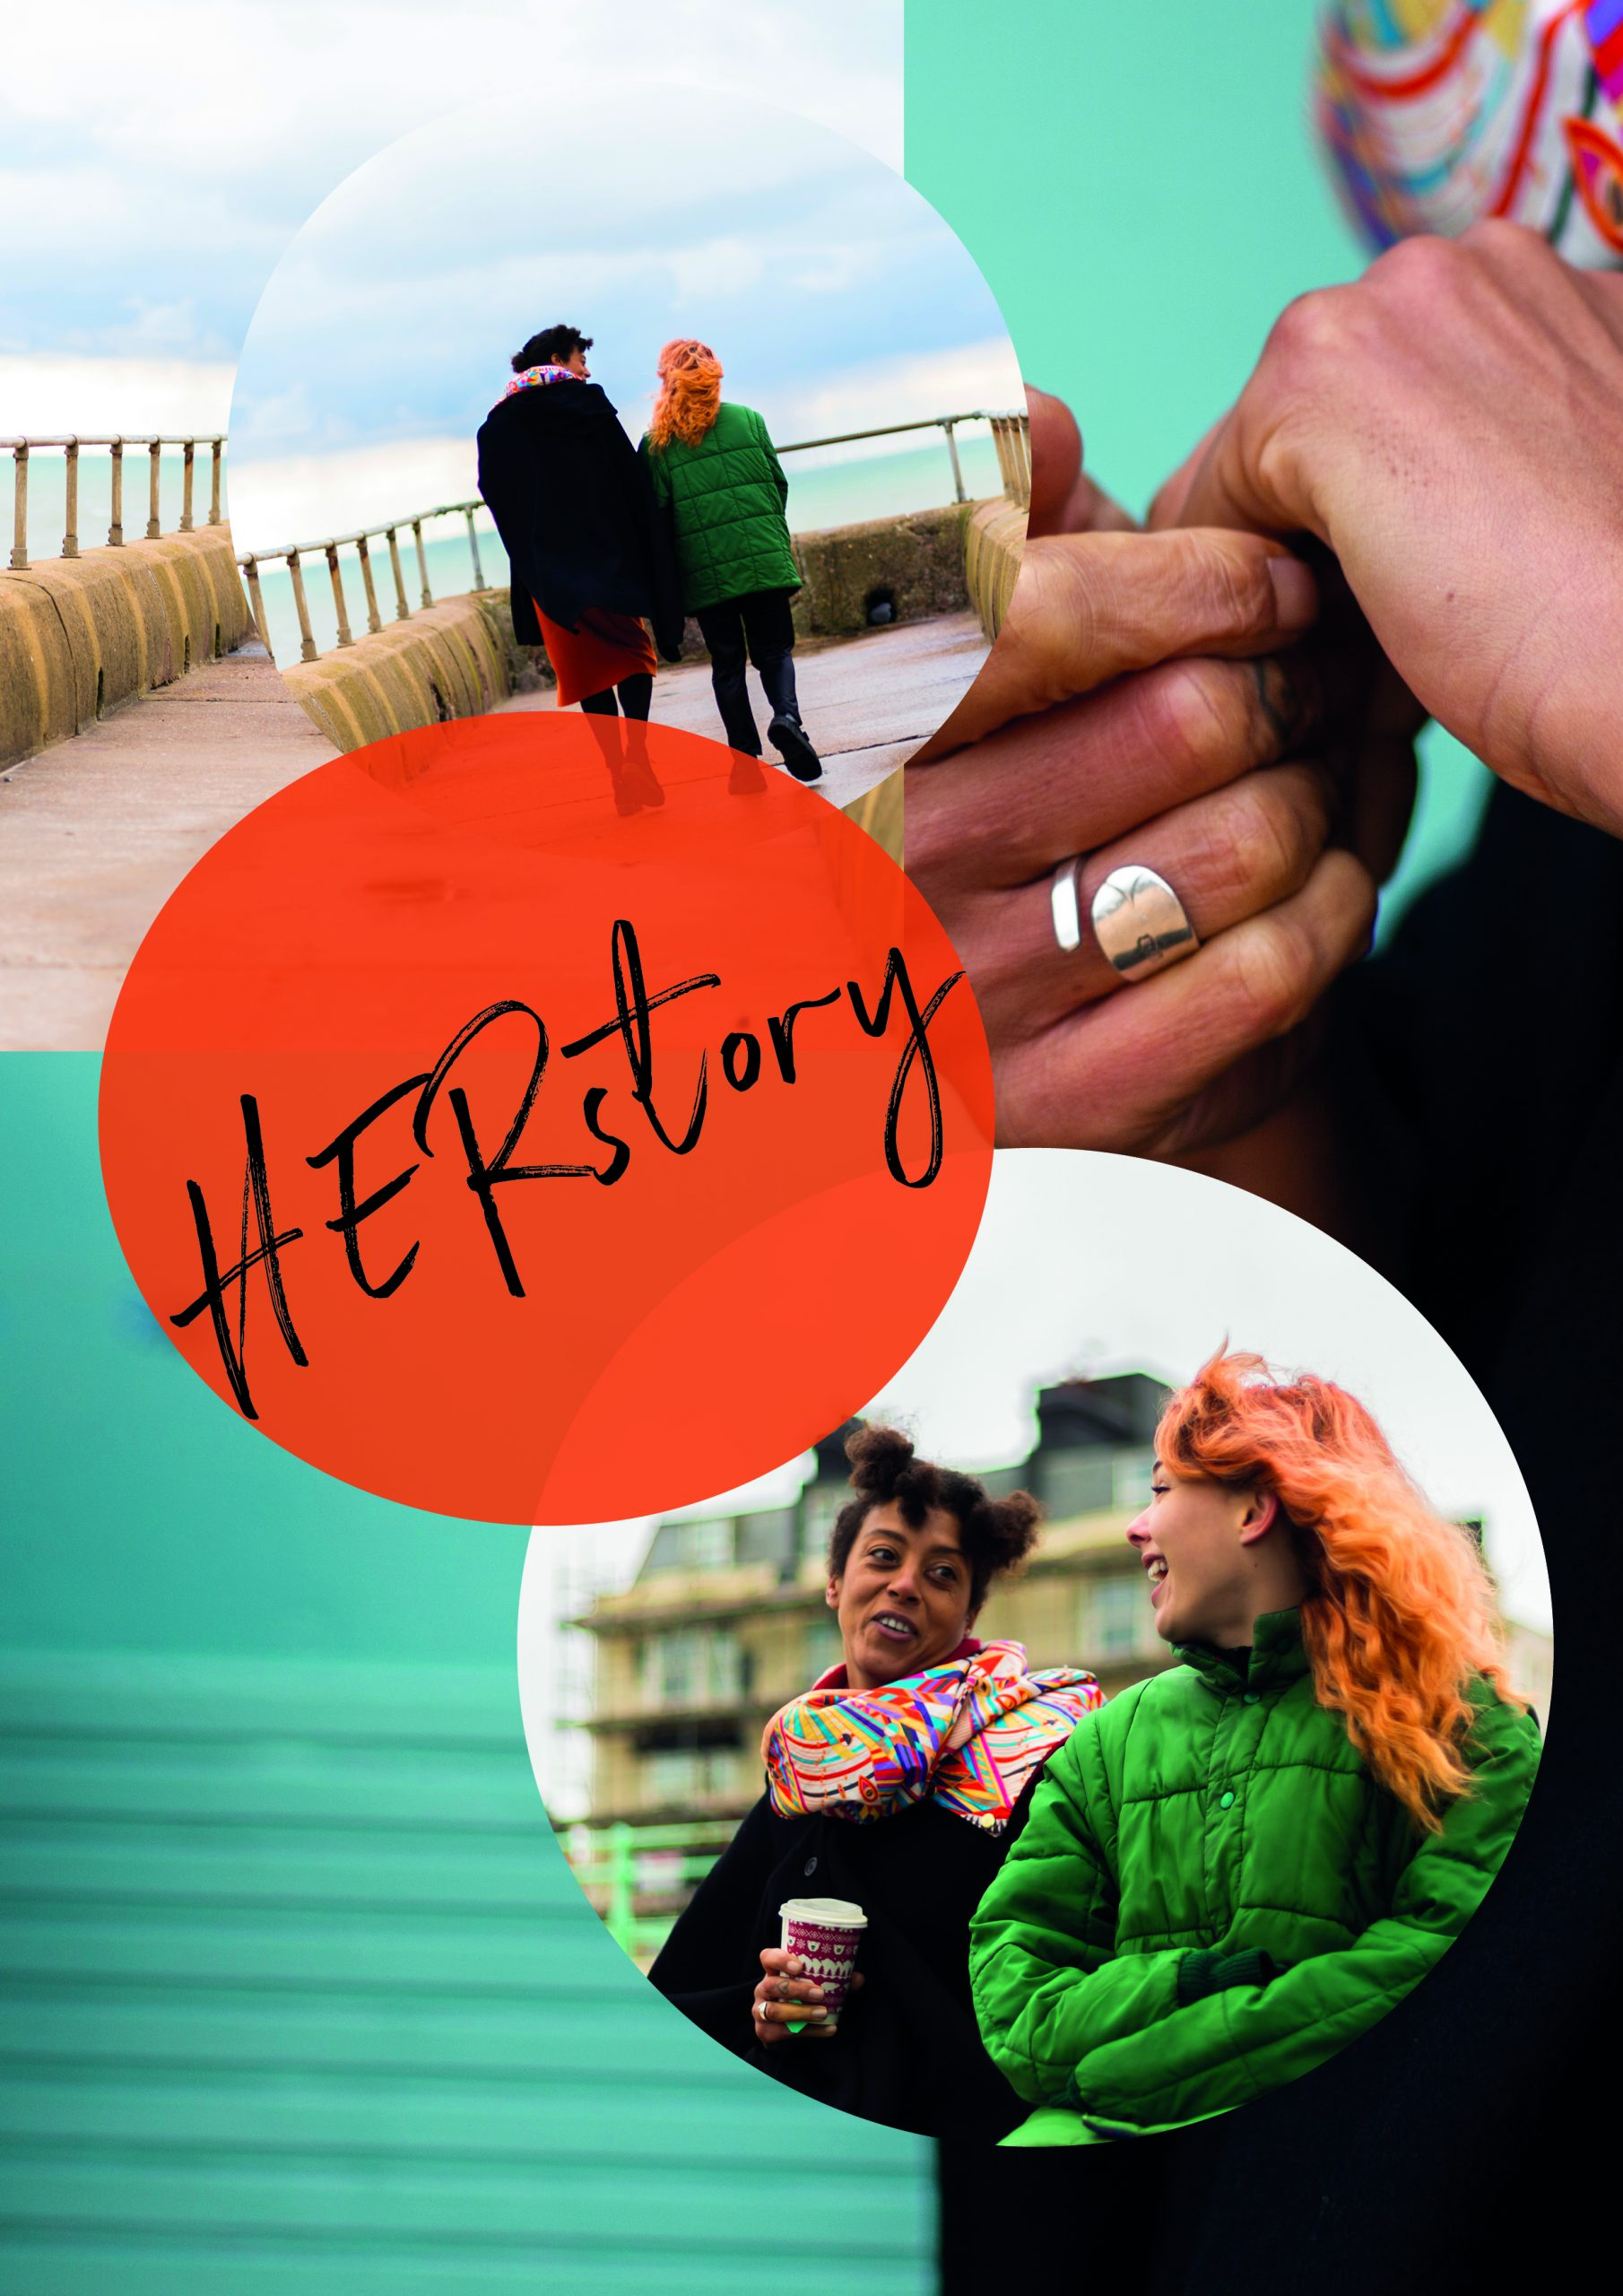 A colourful poster showing women talking and text saying Herstory